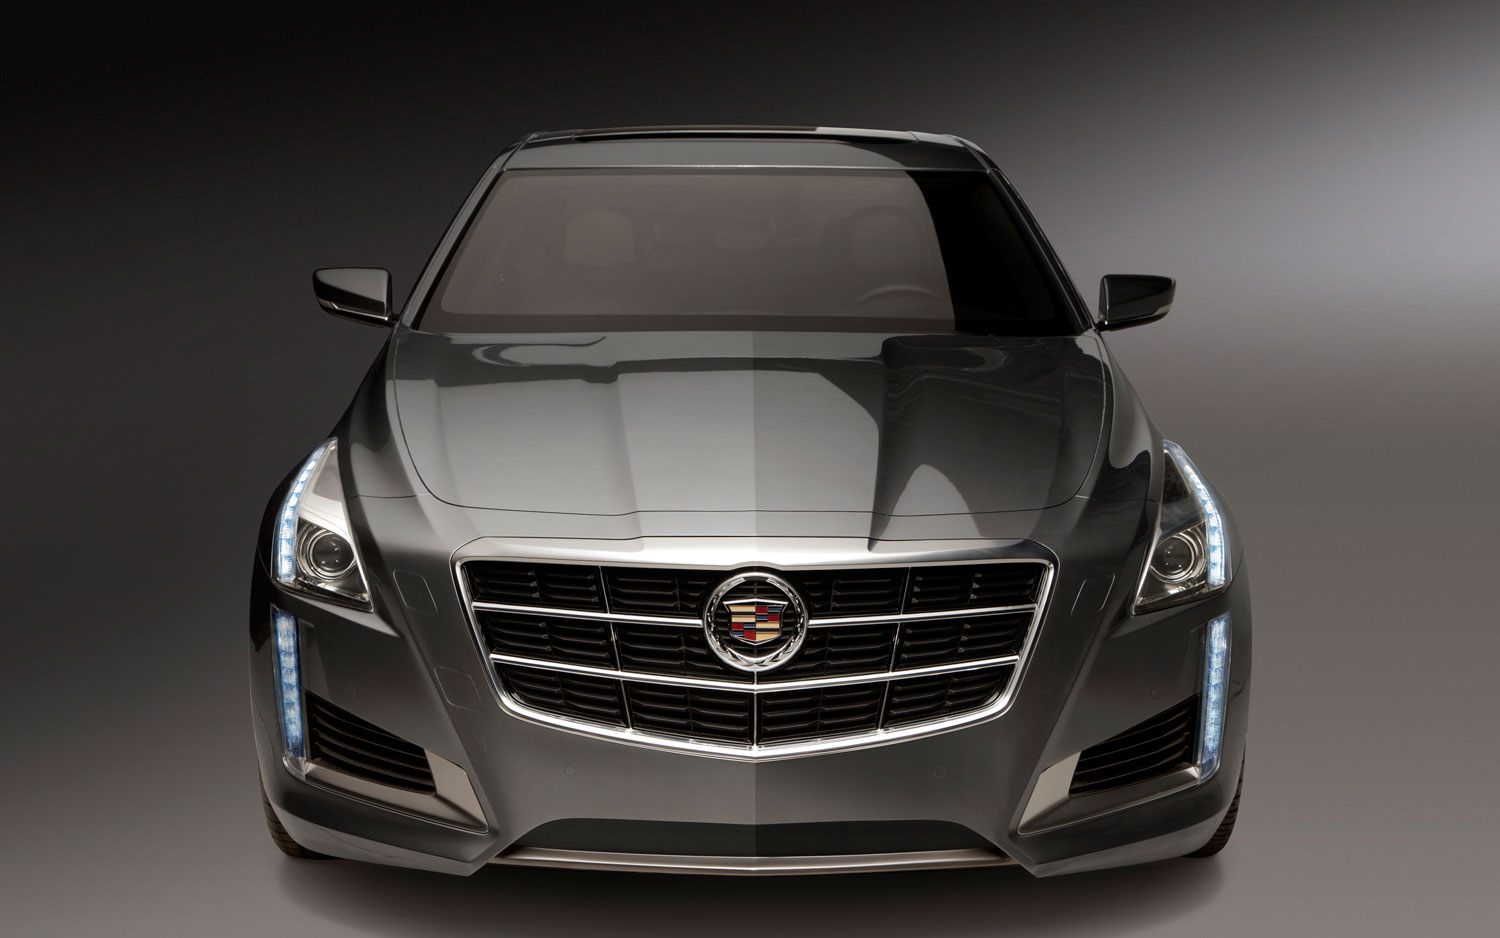 Consumer Reports 2014 Cts Sedan Is Best Luxury Car Lindsay Cars Blog